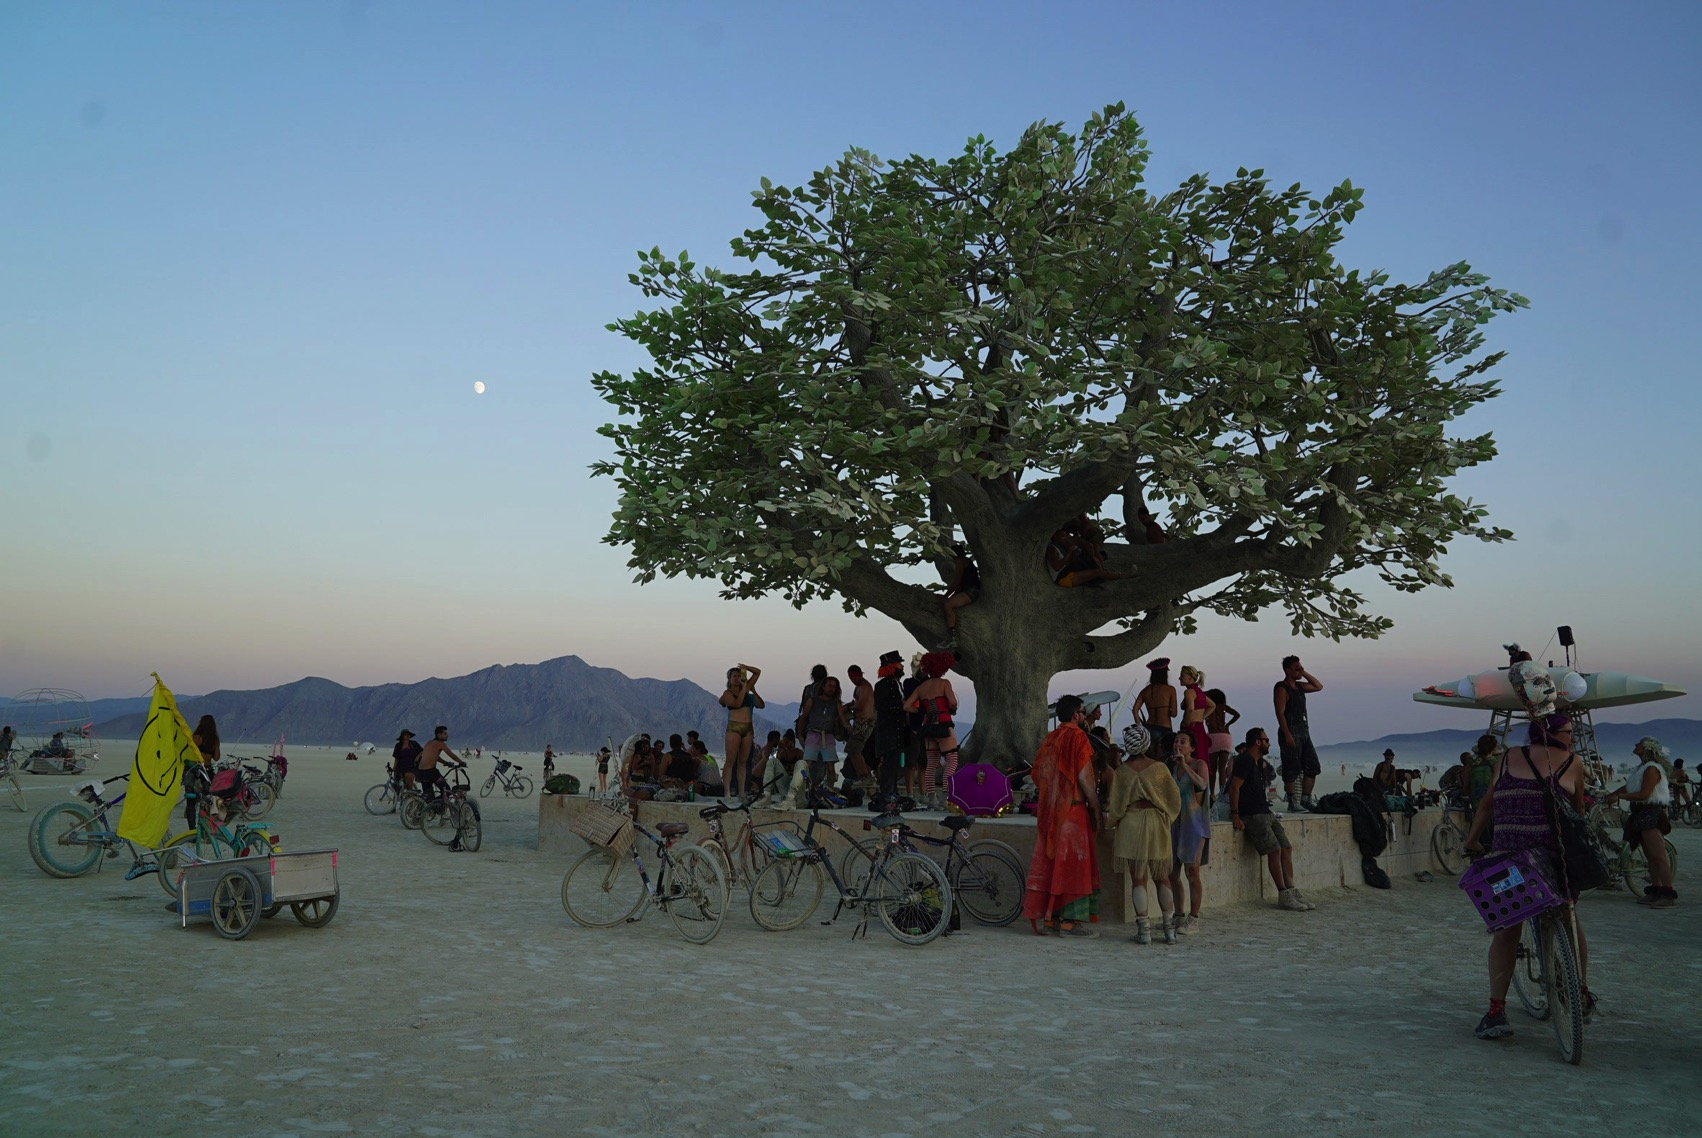 Tree of tenere studio drift dezeen 2364 col 6